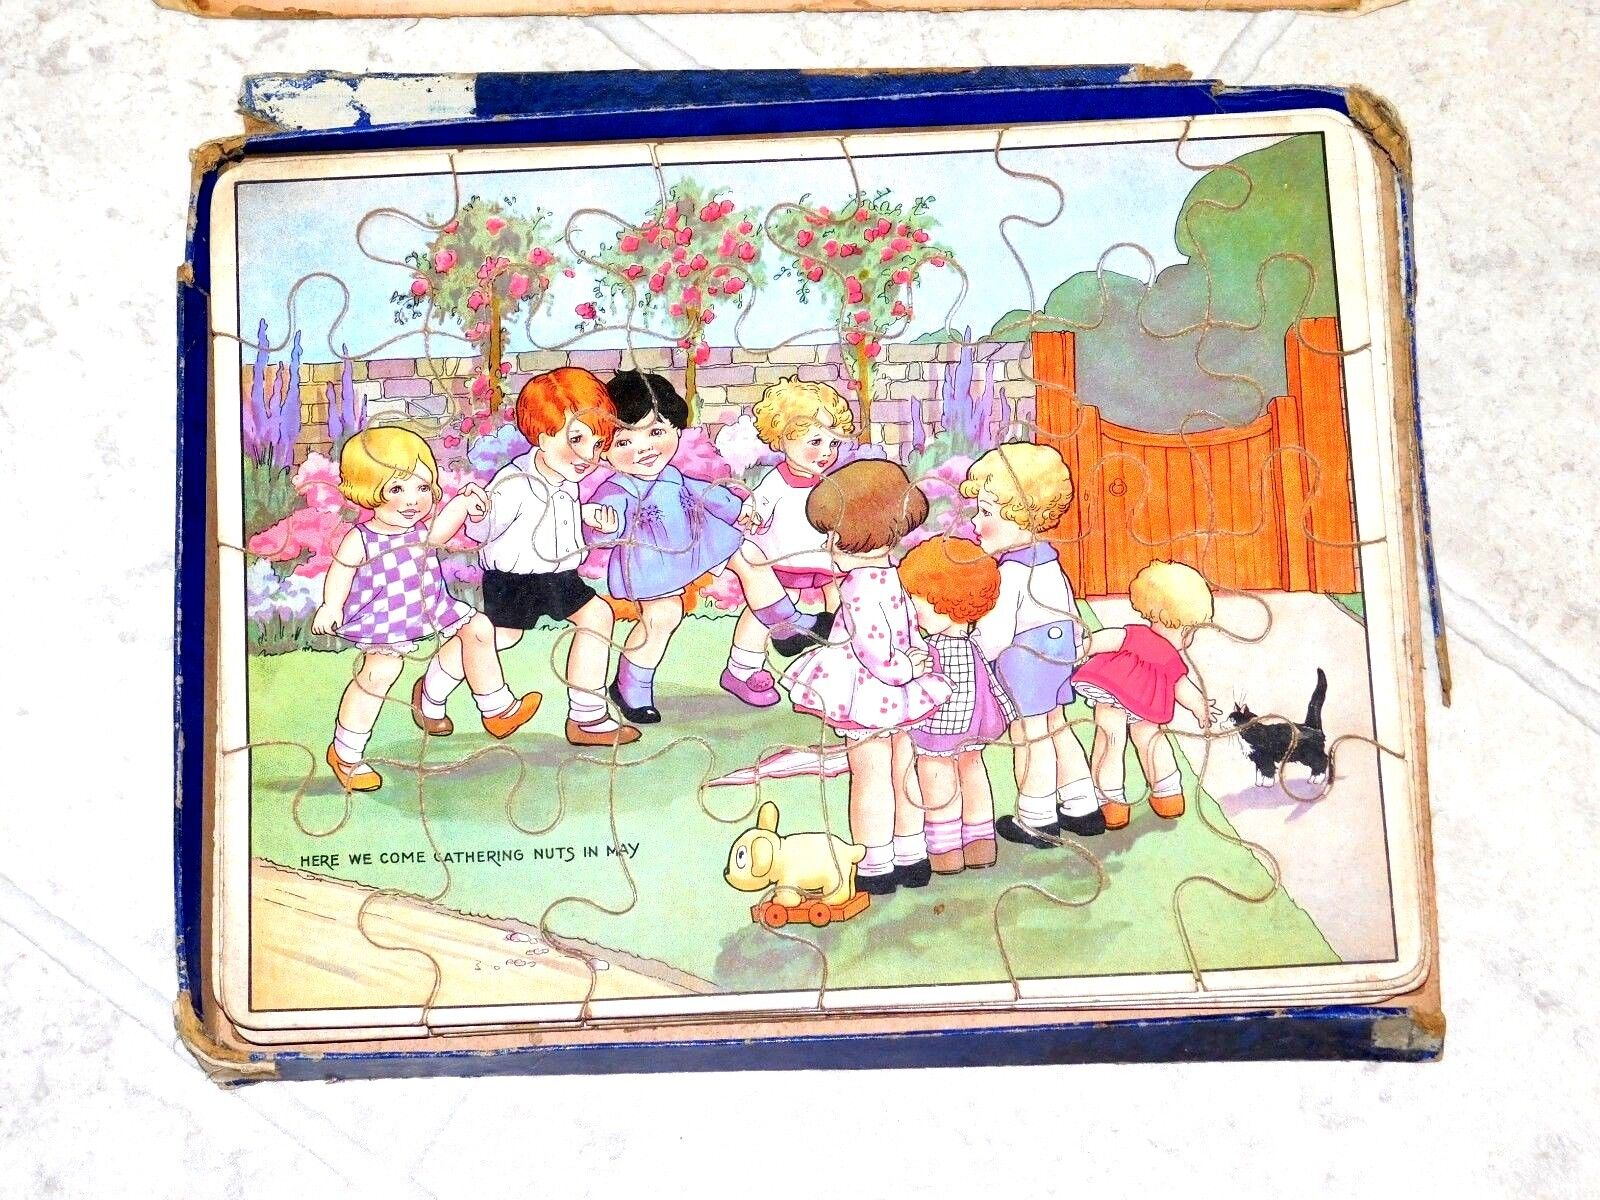 1920s Deco Wood Puzzle by Spears Games England Boxed 4 Puzzle Set Complete